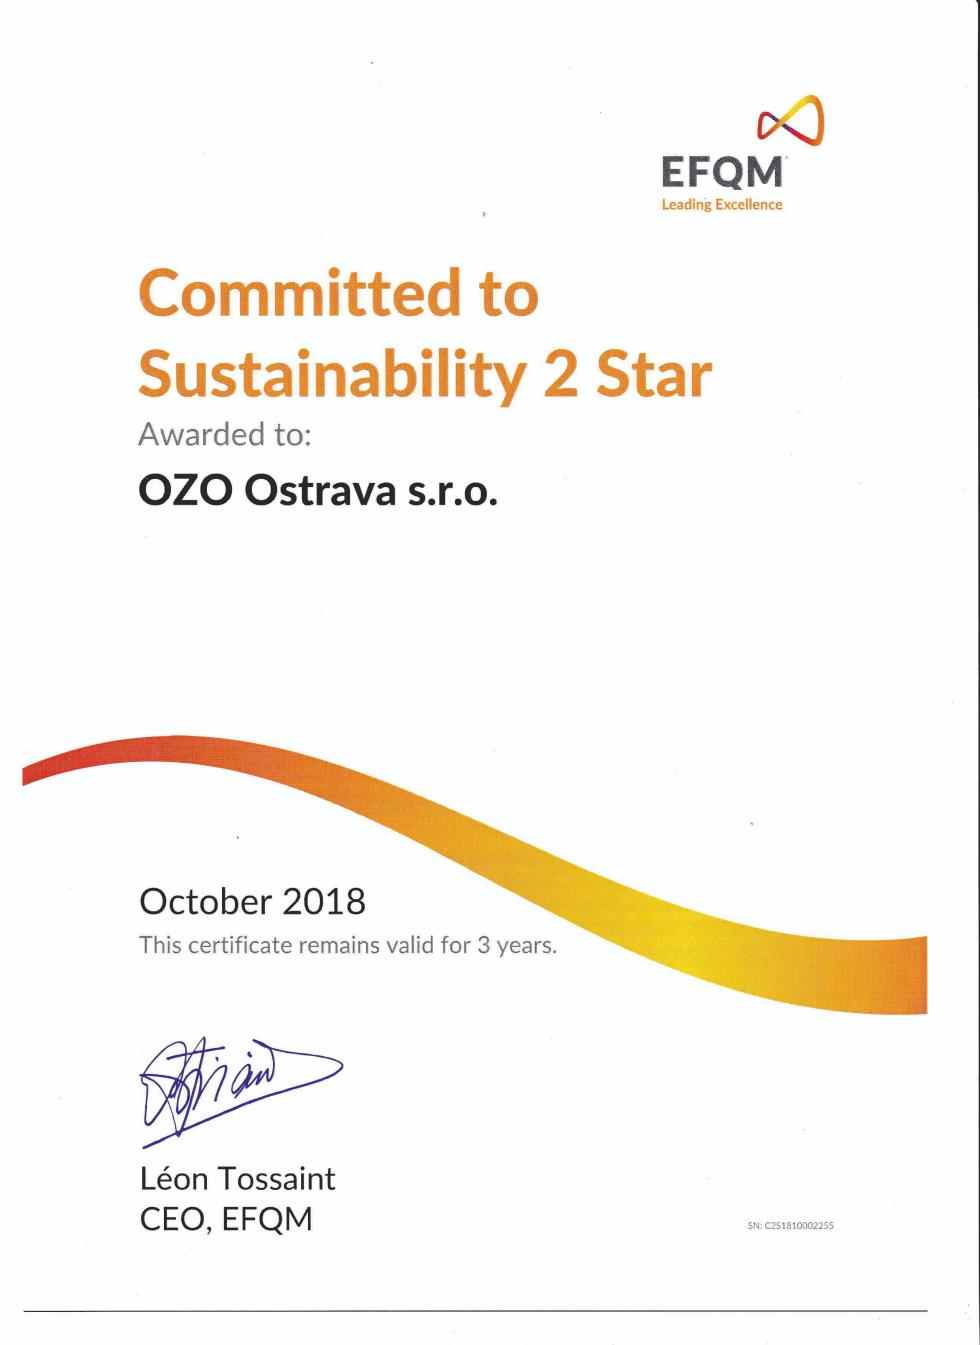 Committed to Sustainability 2 Star